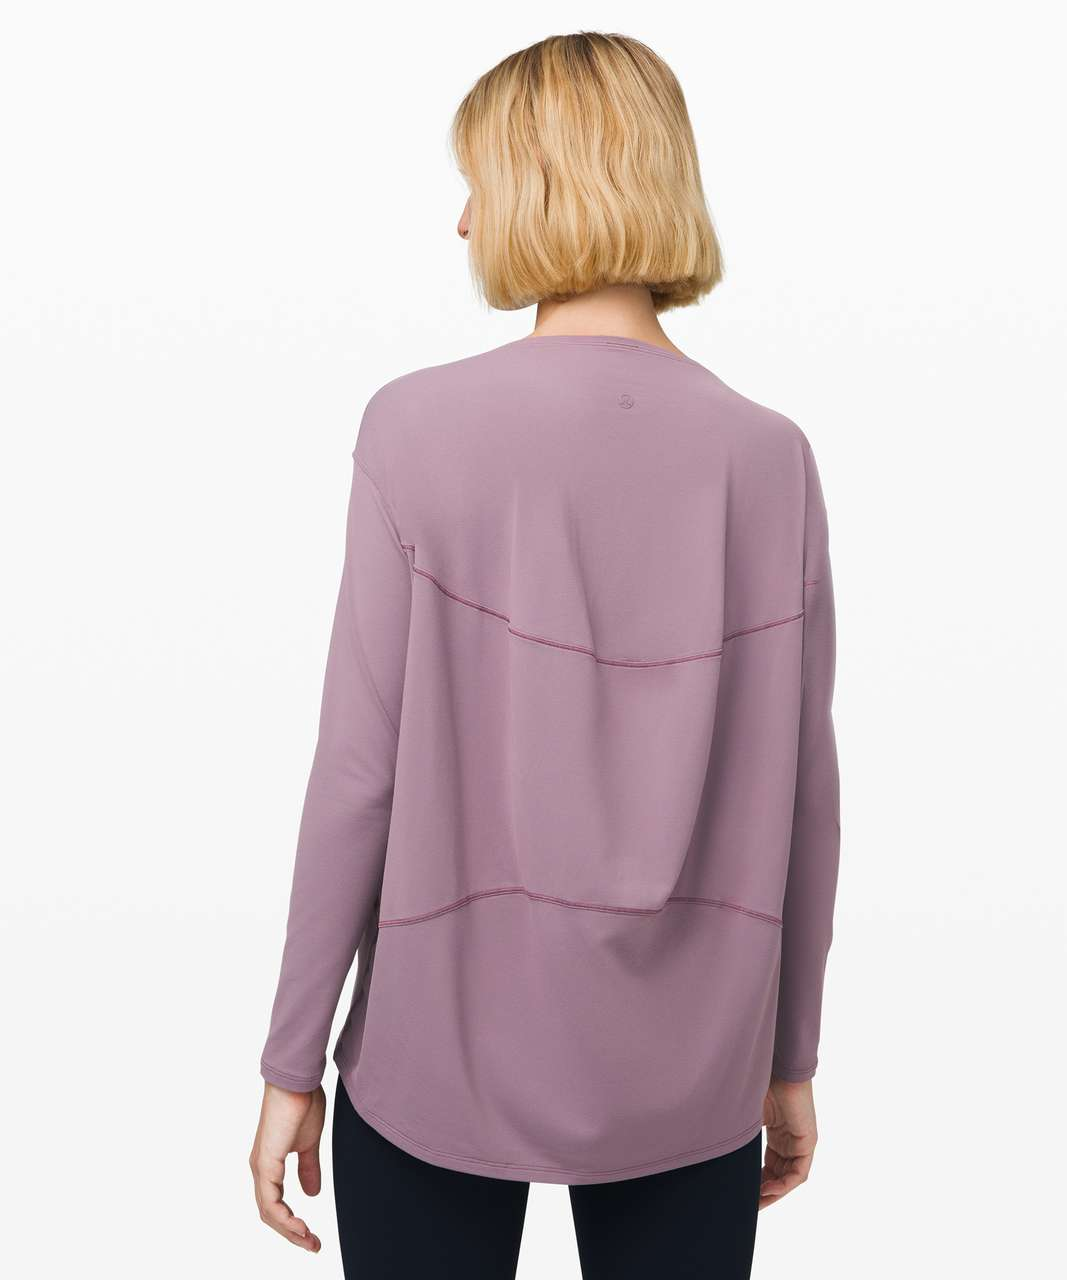 Lululemon Back in Action Long Sleeve *Rulu - Frosted Mulberry